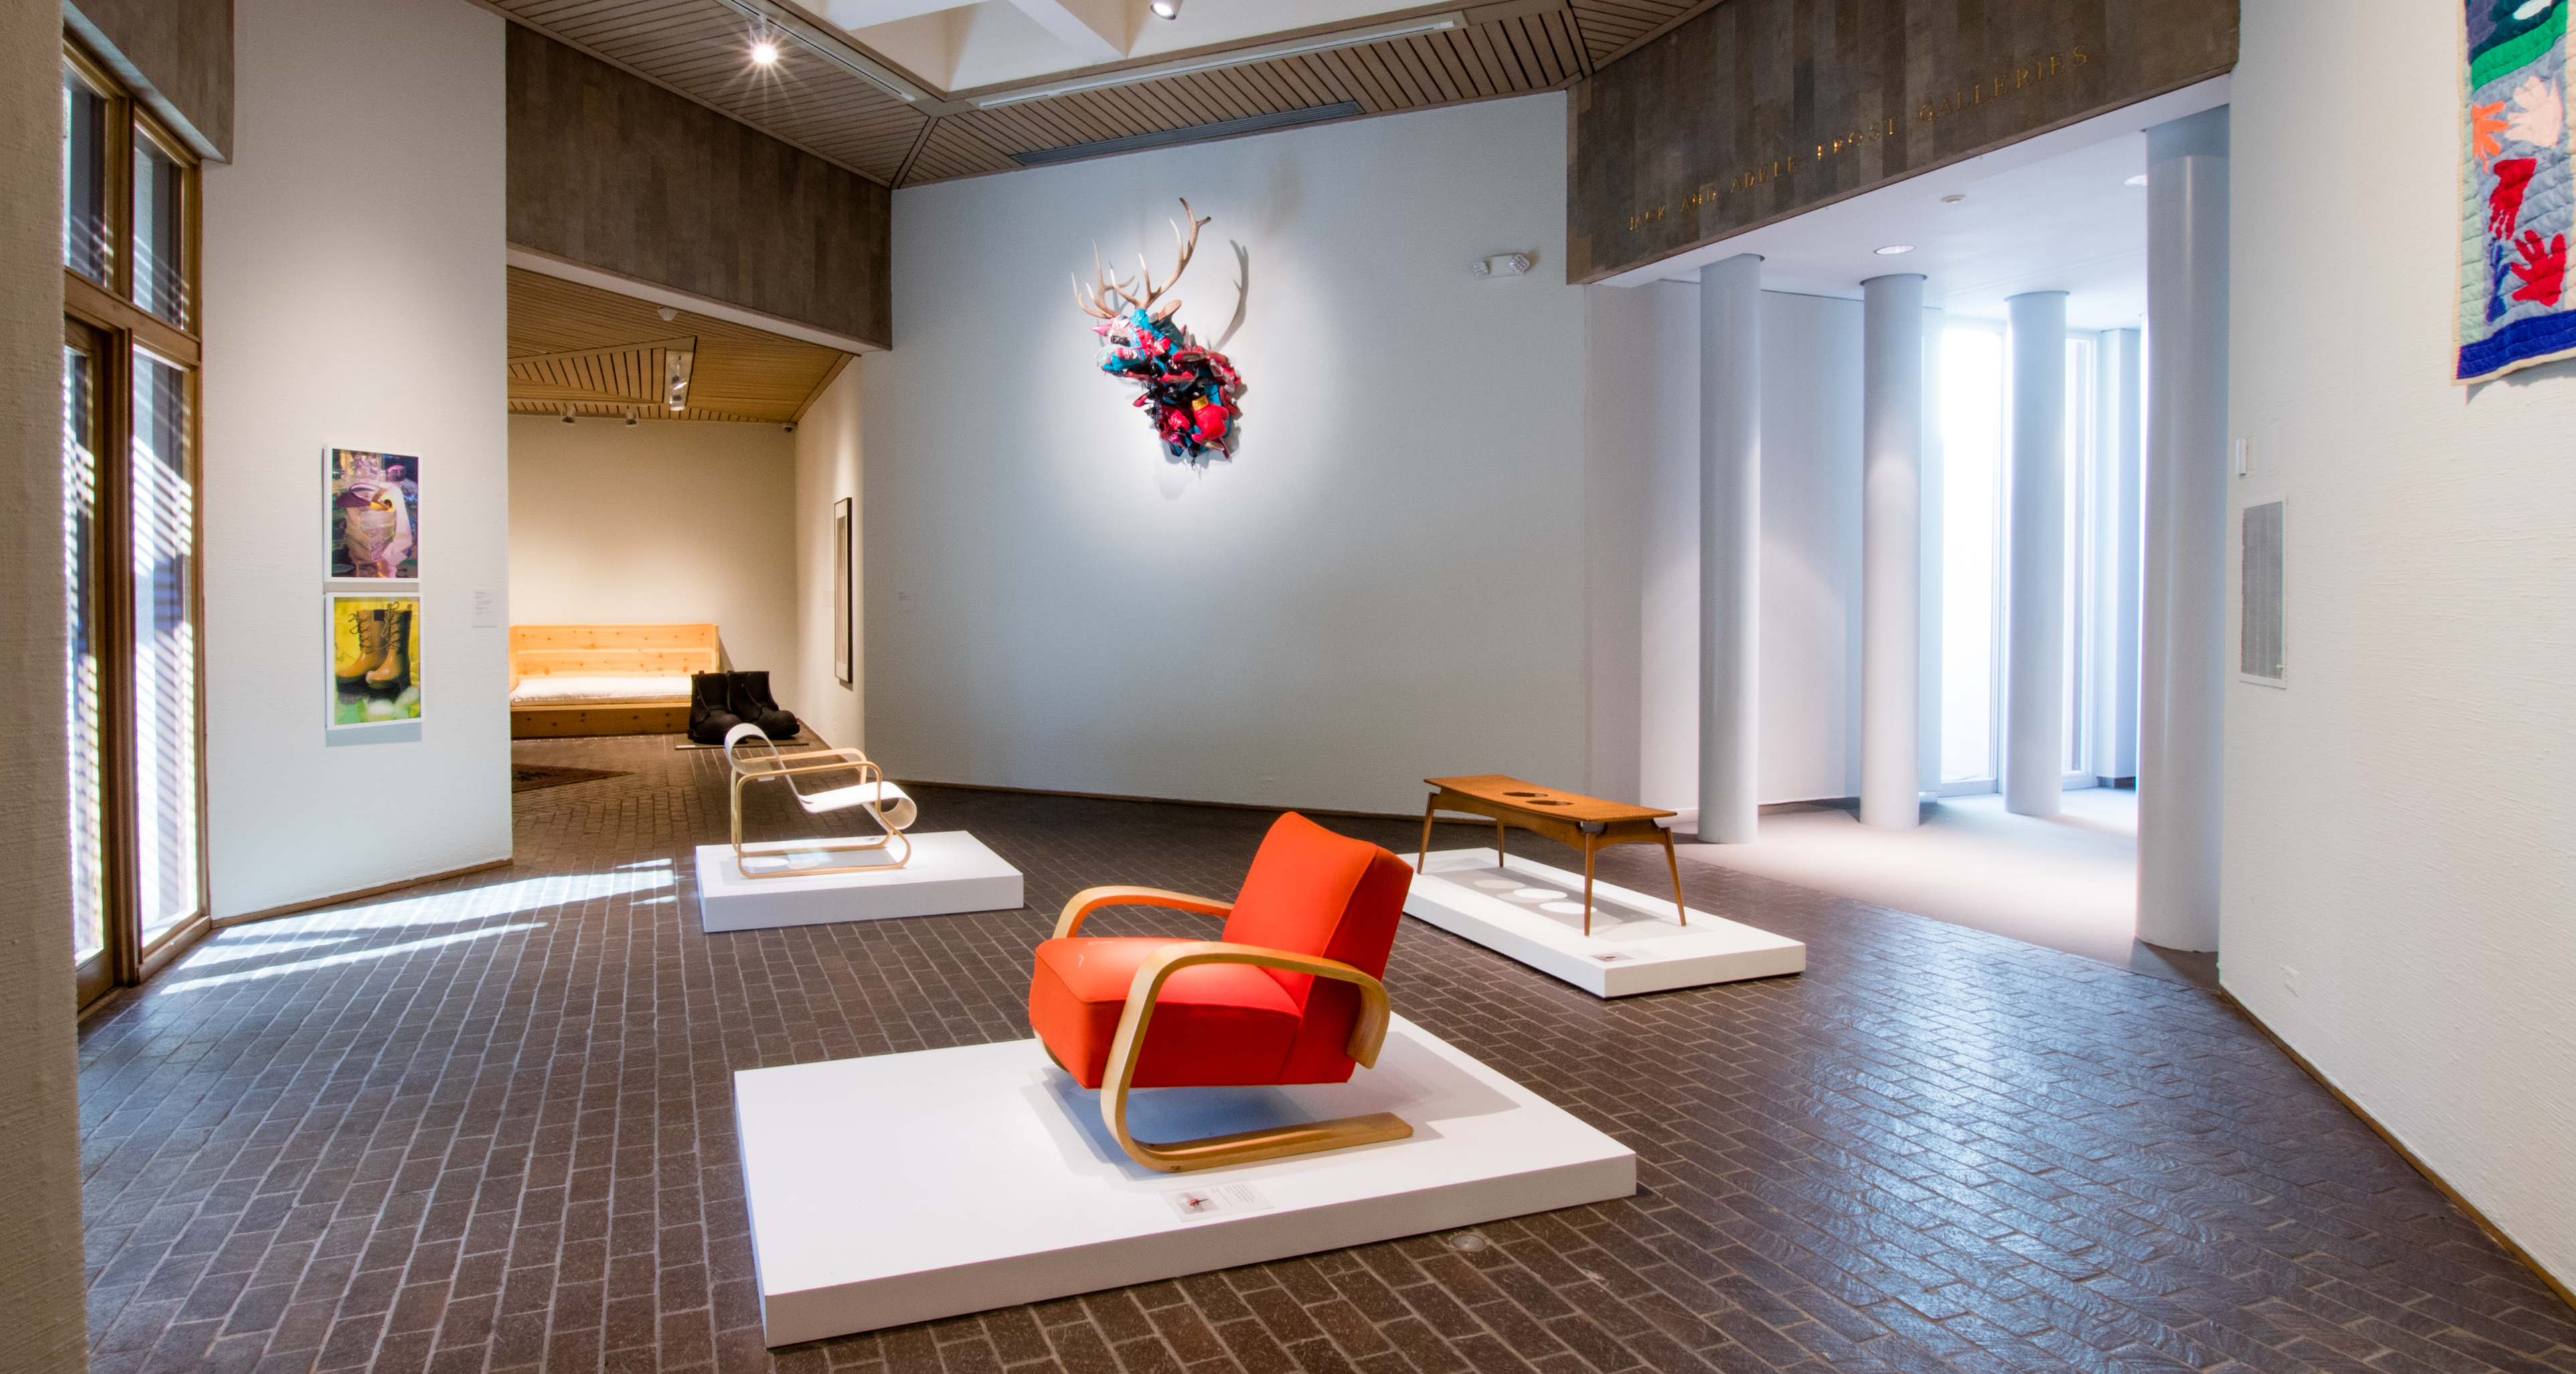 Current Exhibitions Mcnay Art Museum